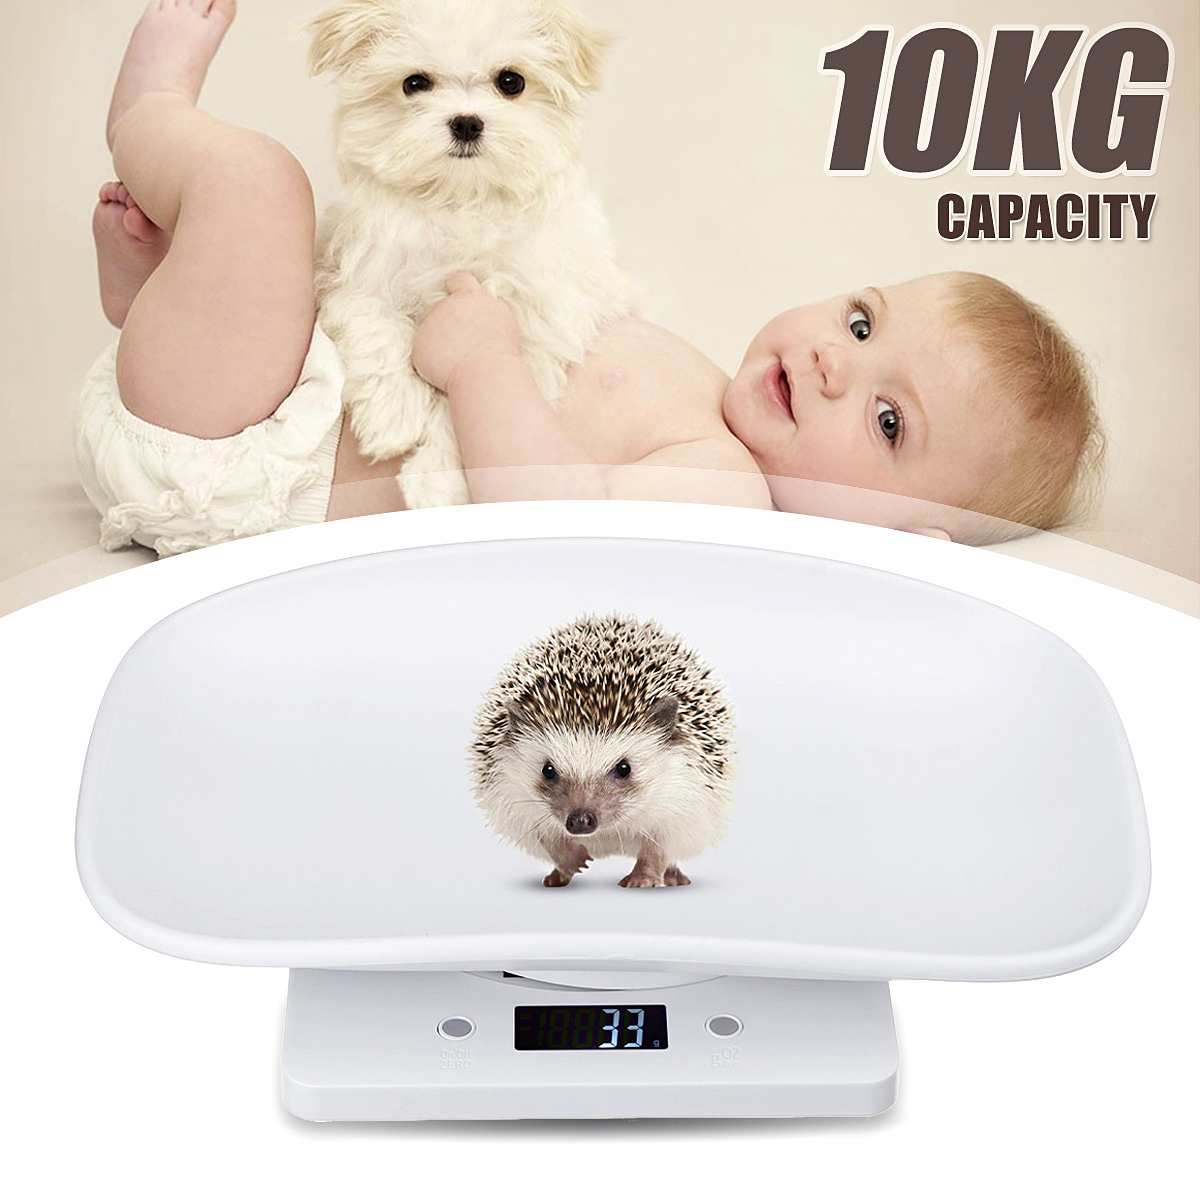 10kg / 1g Multi-function Digital Electronic Small Pet Animals Balance Newborn Baby Scale